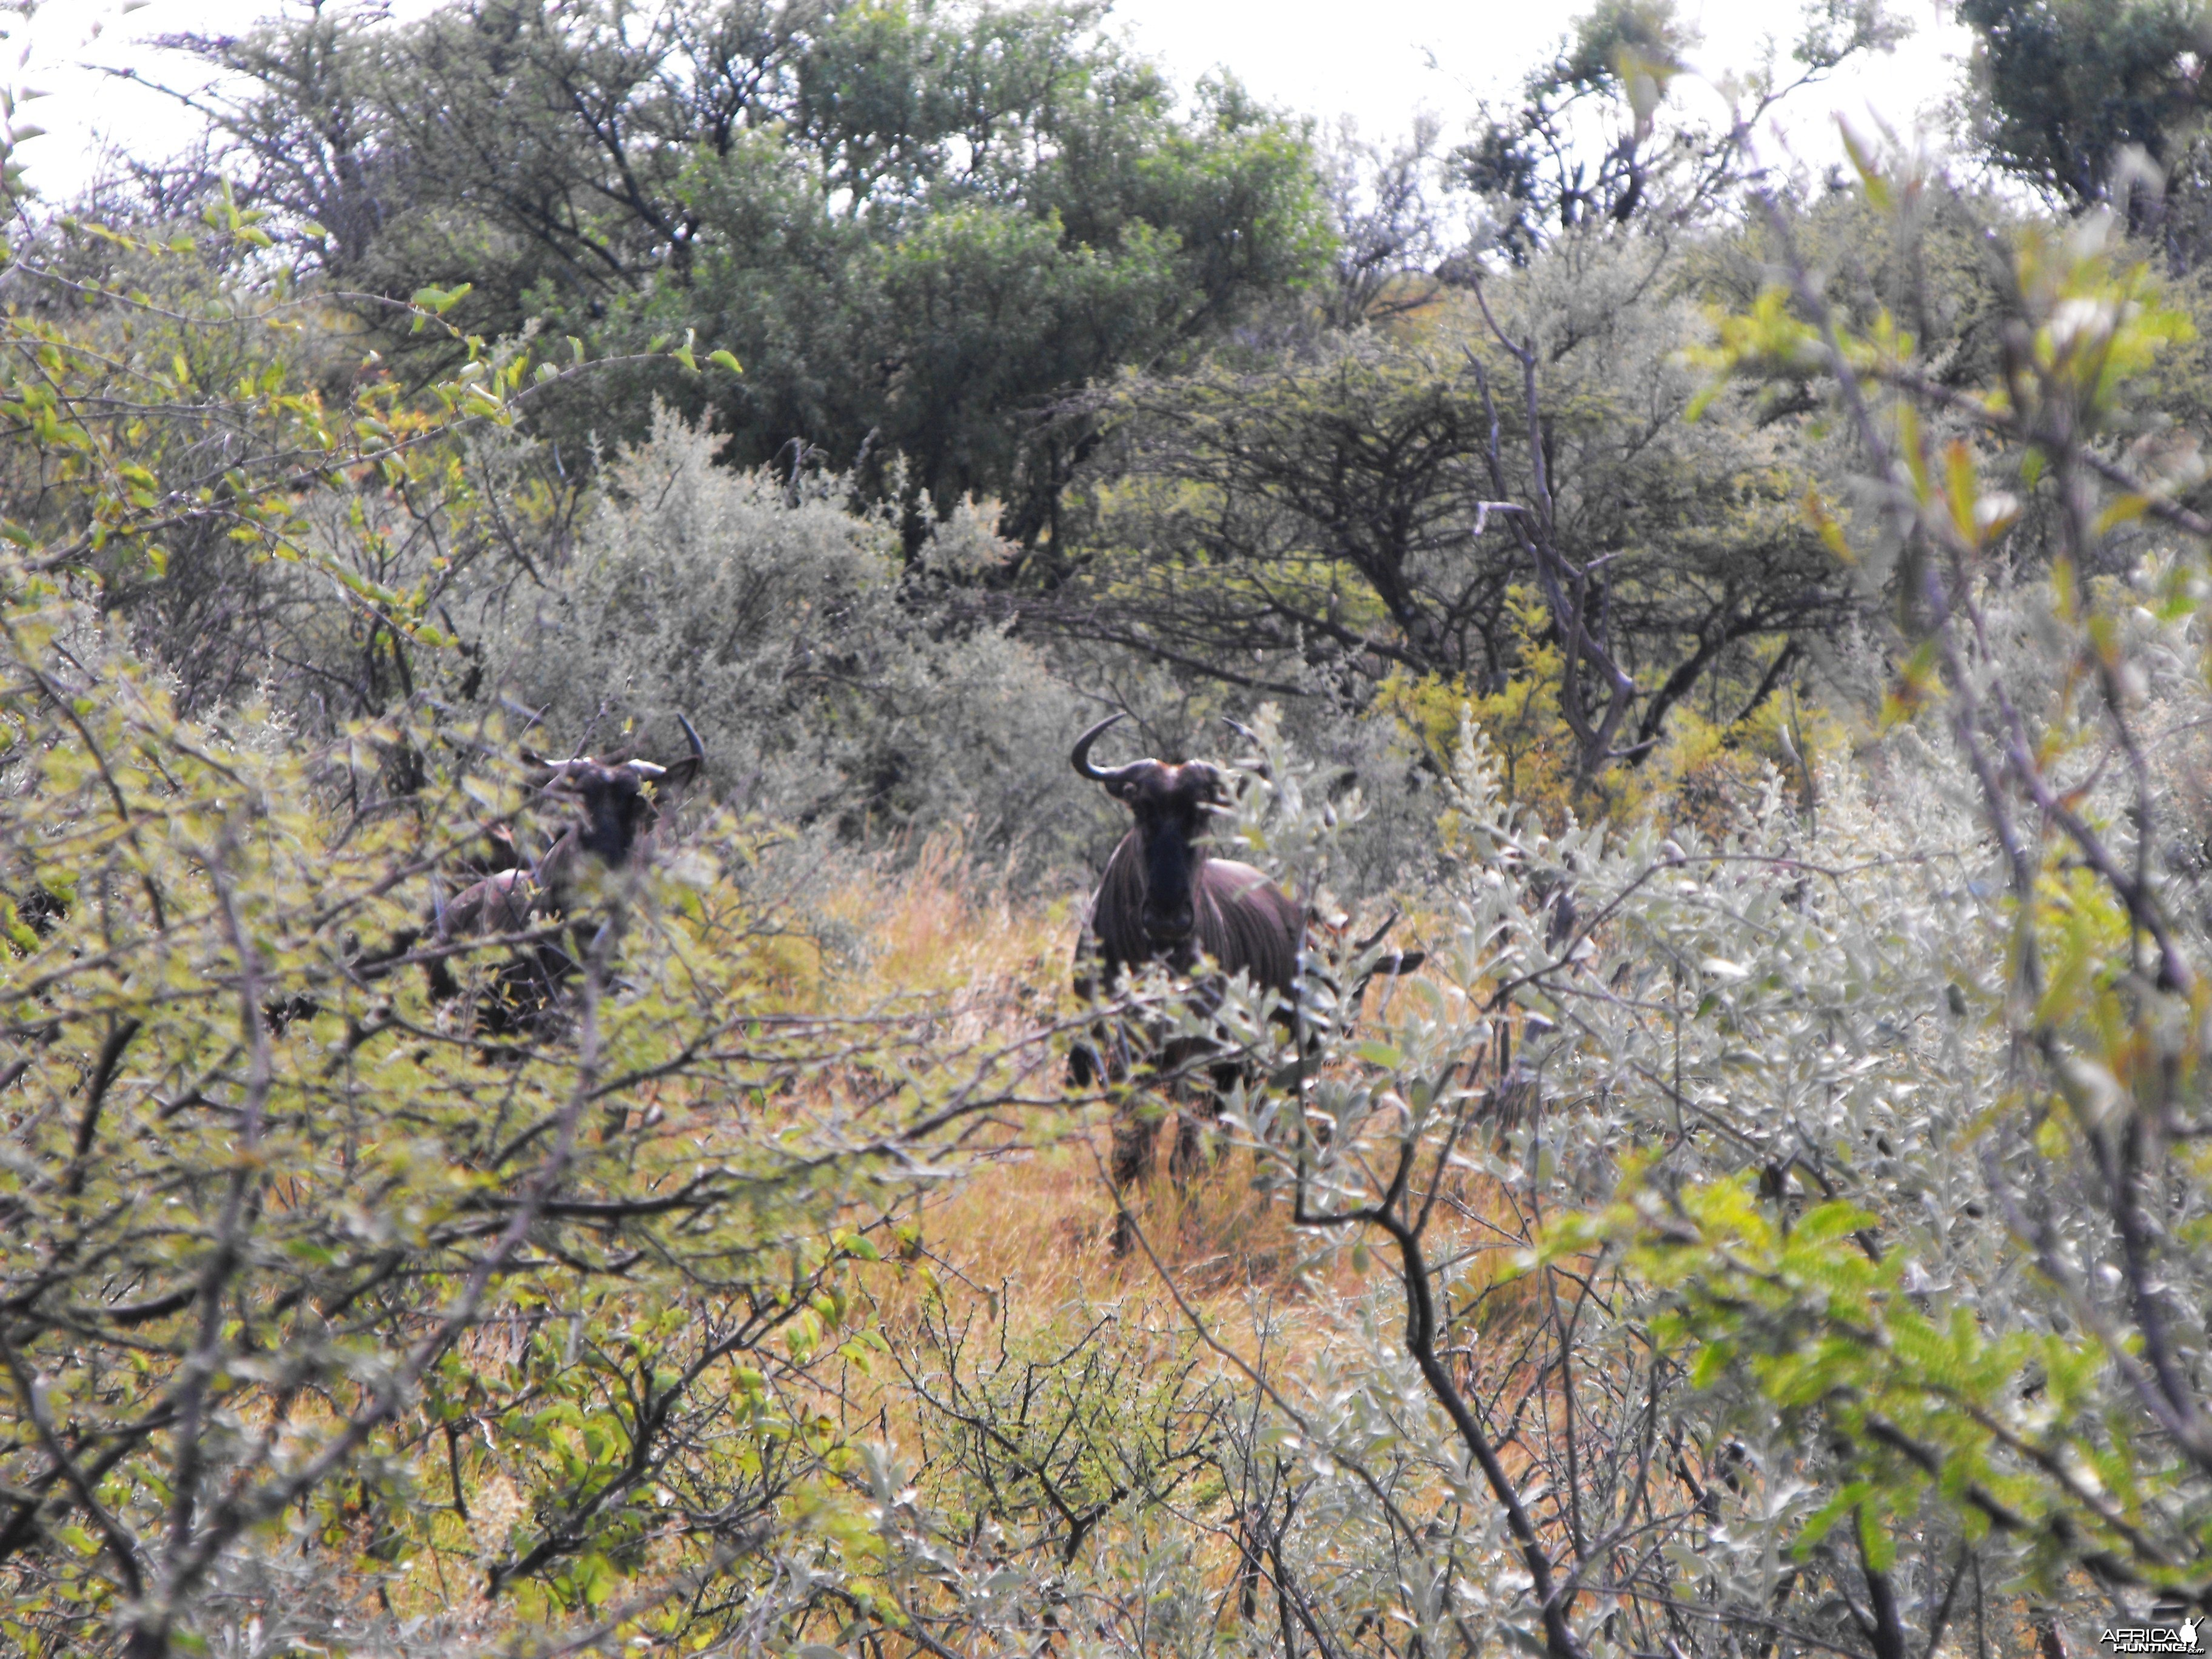 Surprise - Blue wildebeest scaring the crap outta me - thinking they were b